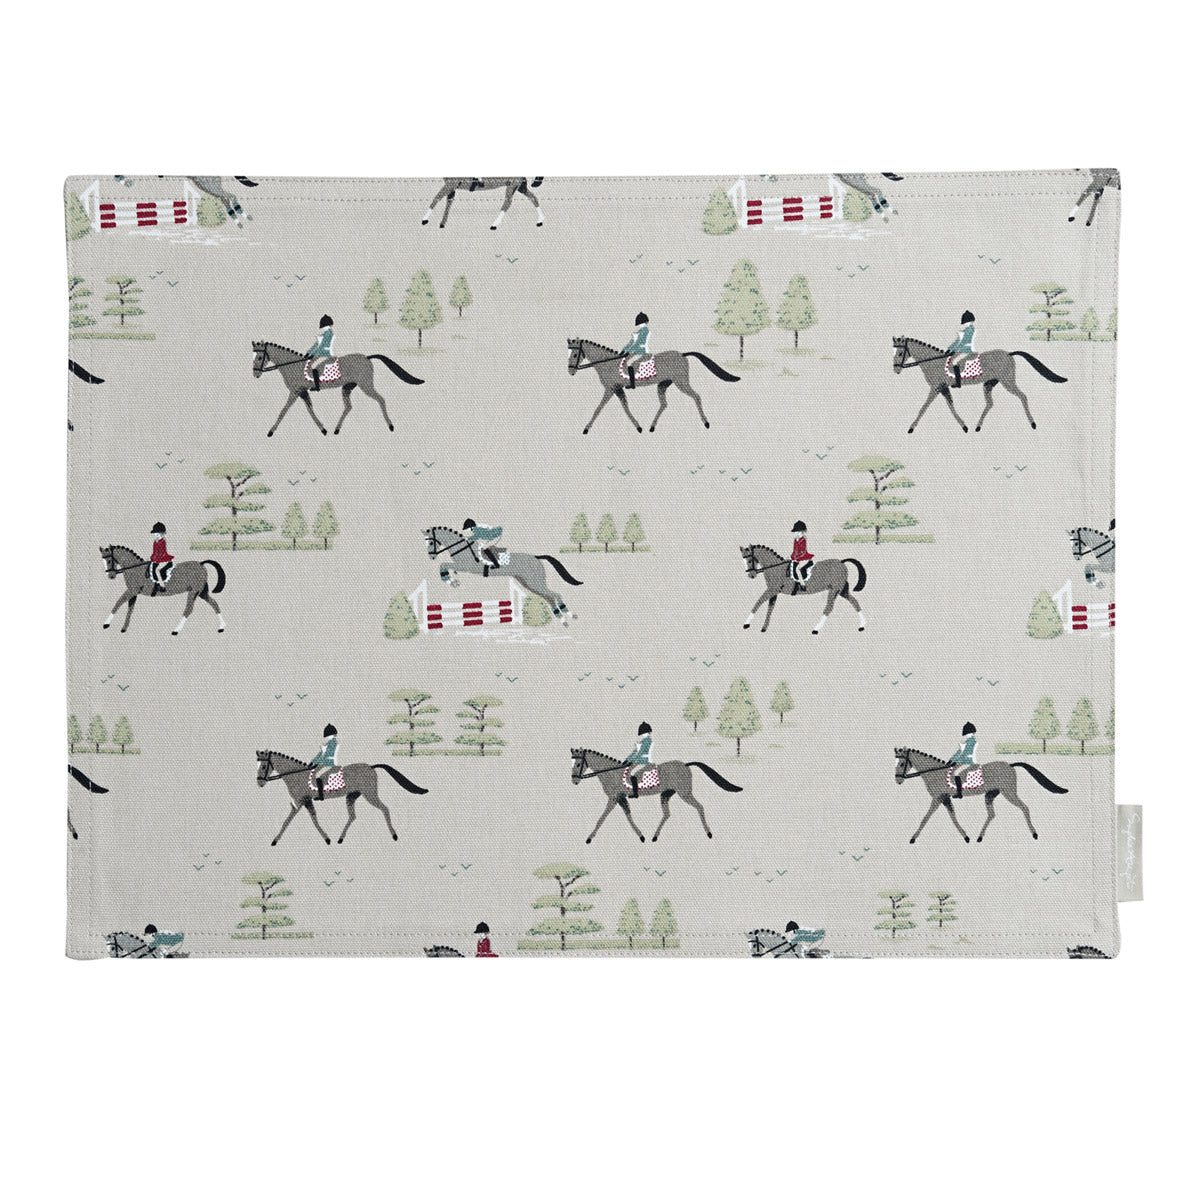 Horses Fabric Placemat